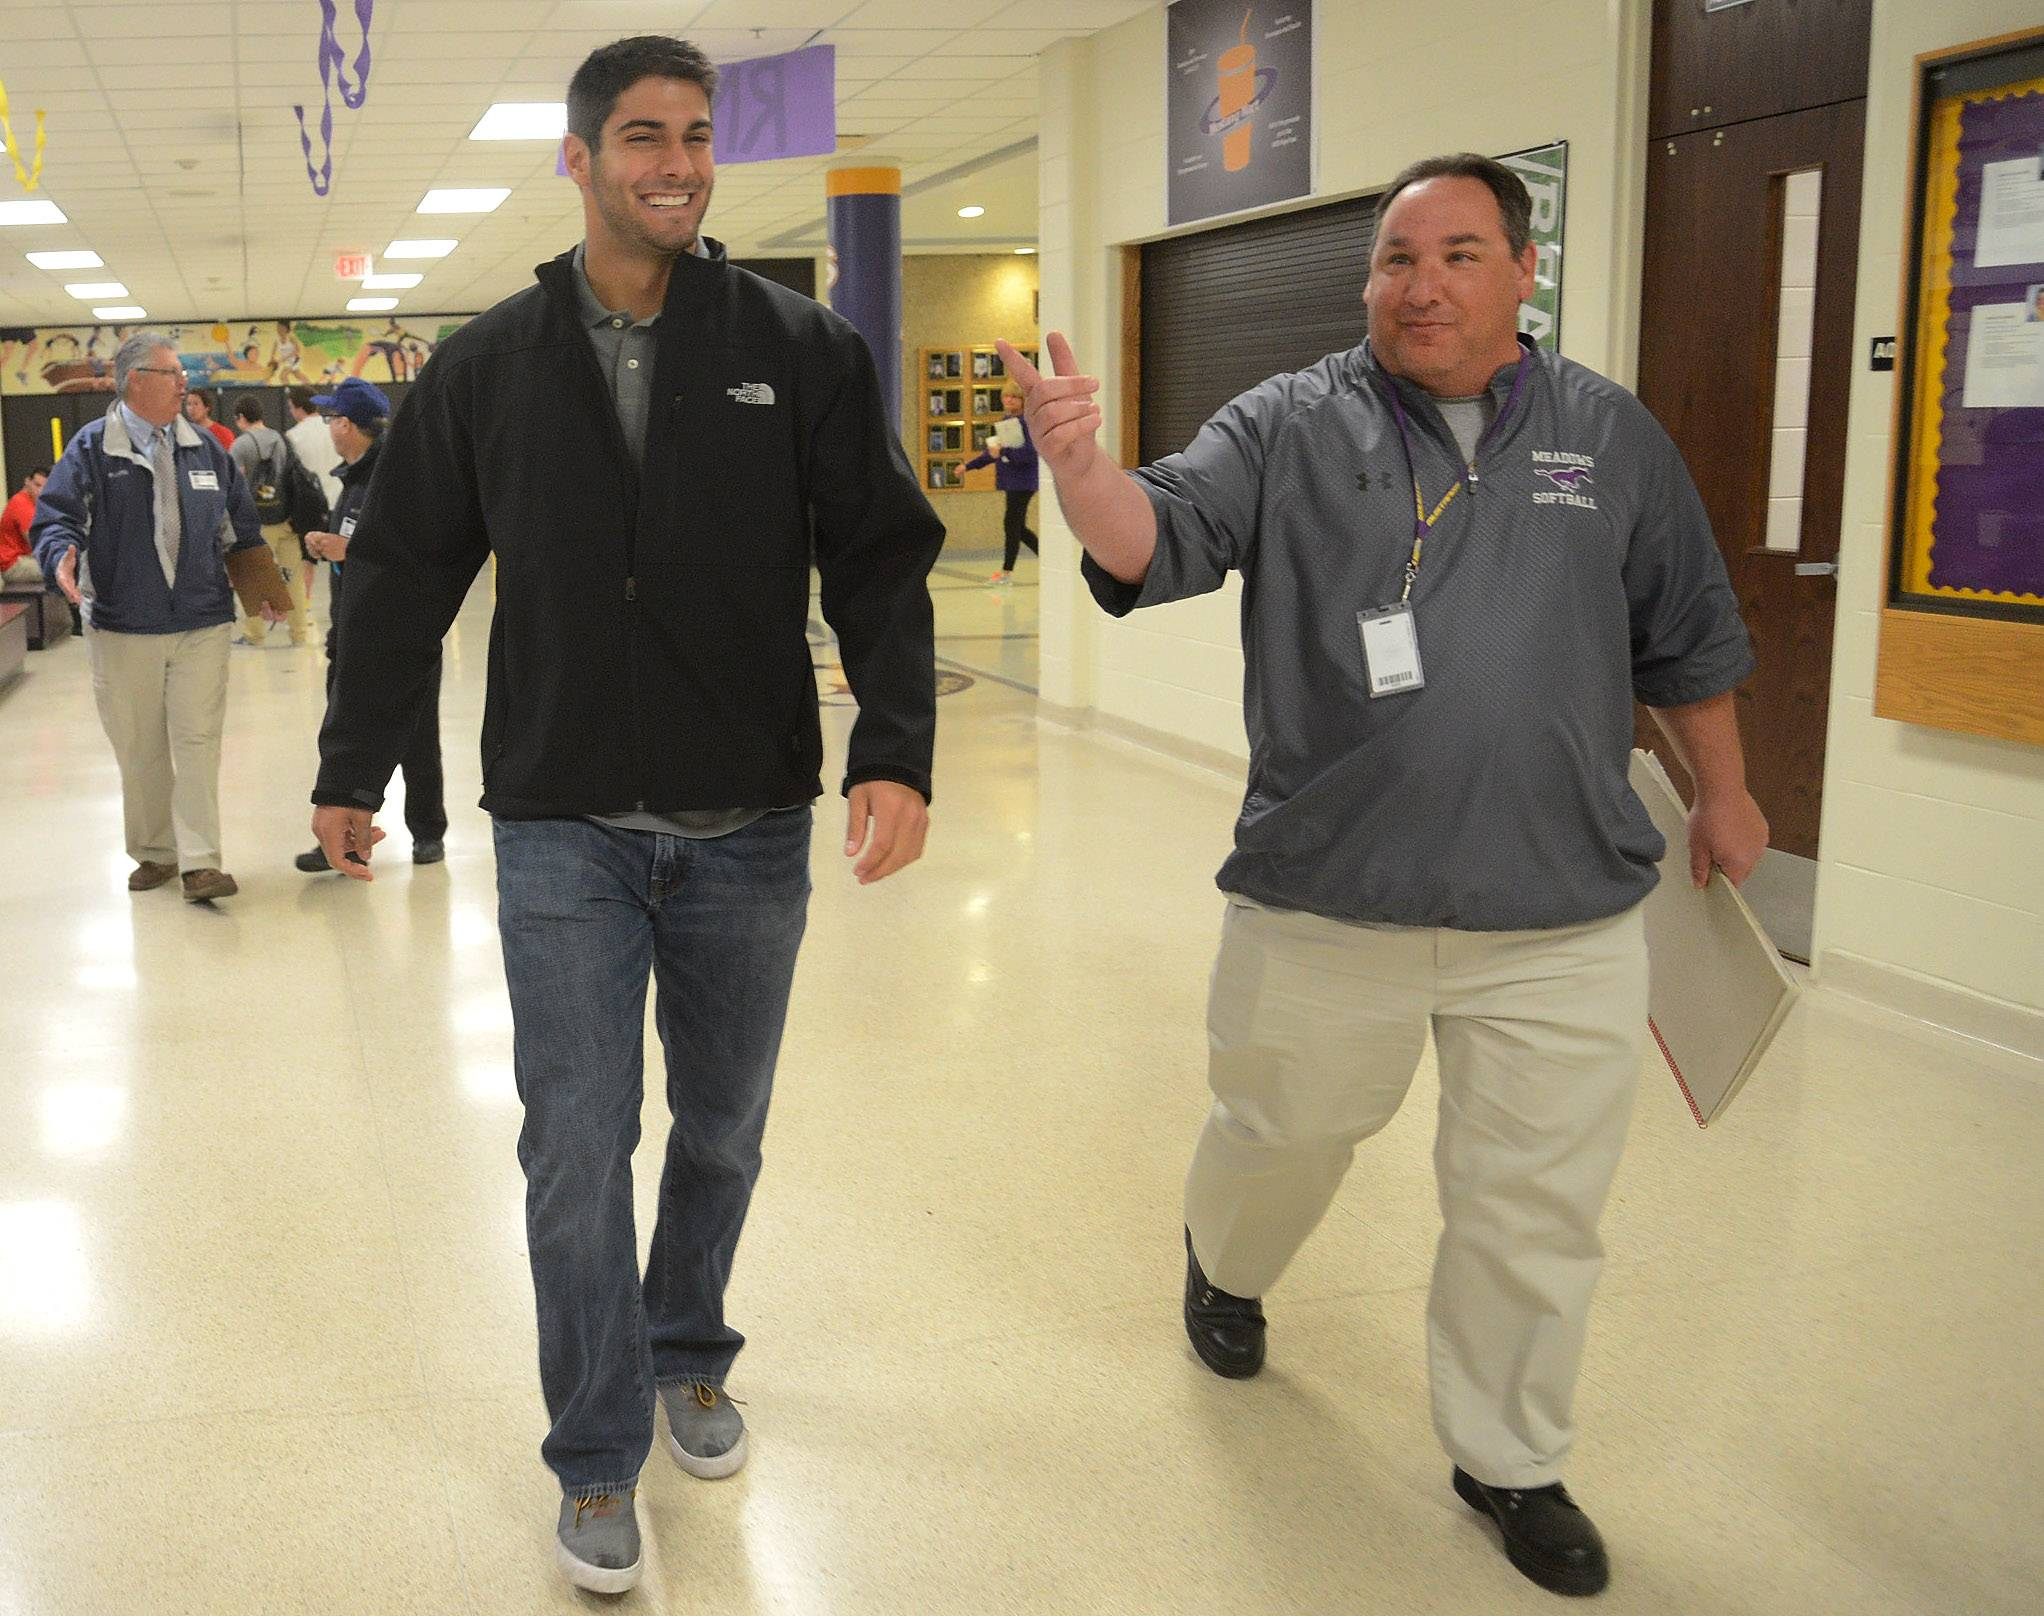 NFL quarterback prospect Jimmy Garoppolo returns to Rolling Meadows High School to reunite with former coaches and players and to talk to students. Here, coach Tony Wolanski walks with Garoppolo to the auditorium.